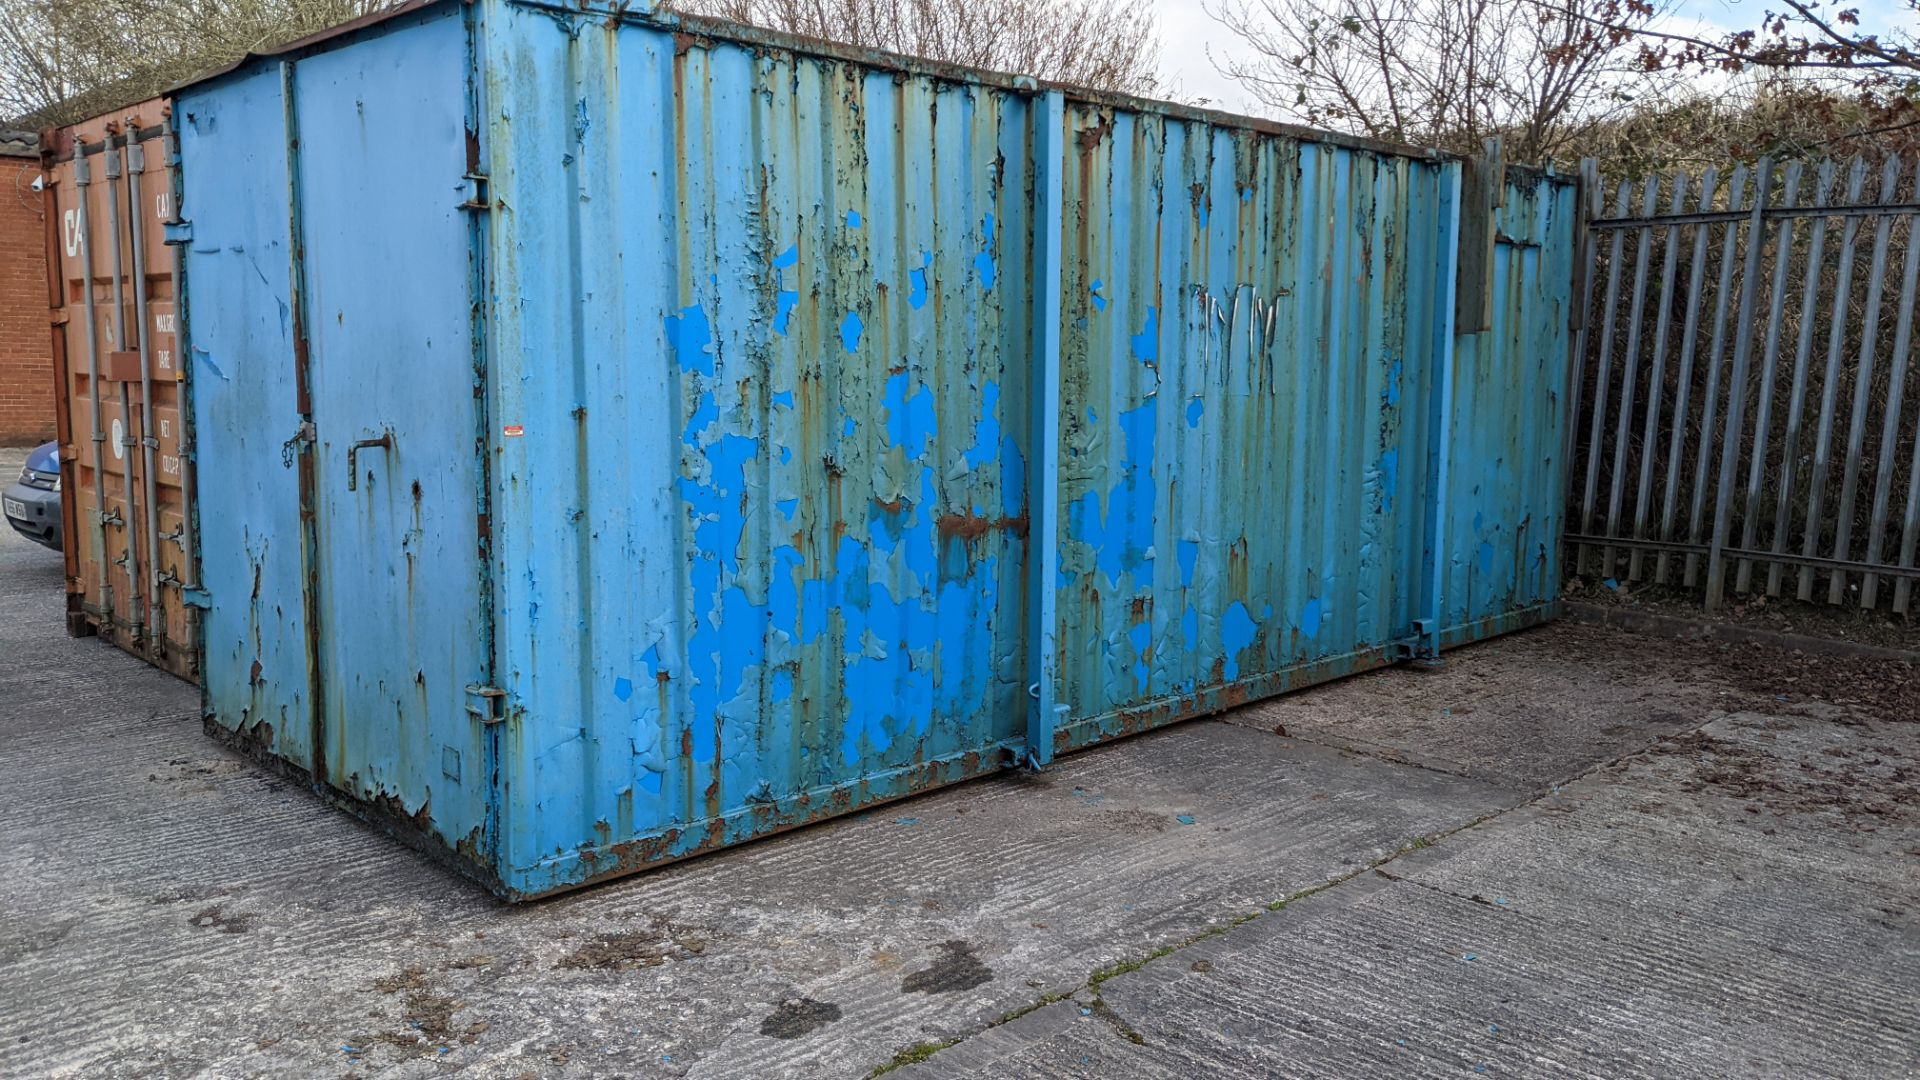 Blue metal container with jack legs & doors at one end. Max external dimensions (excluding legs) ap